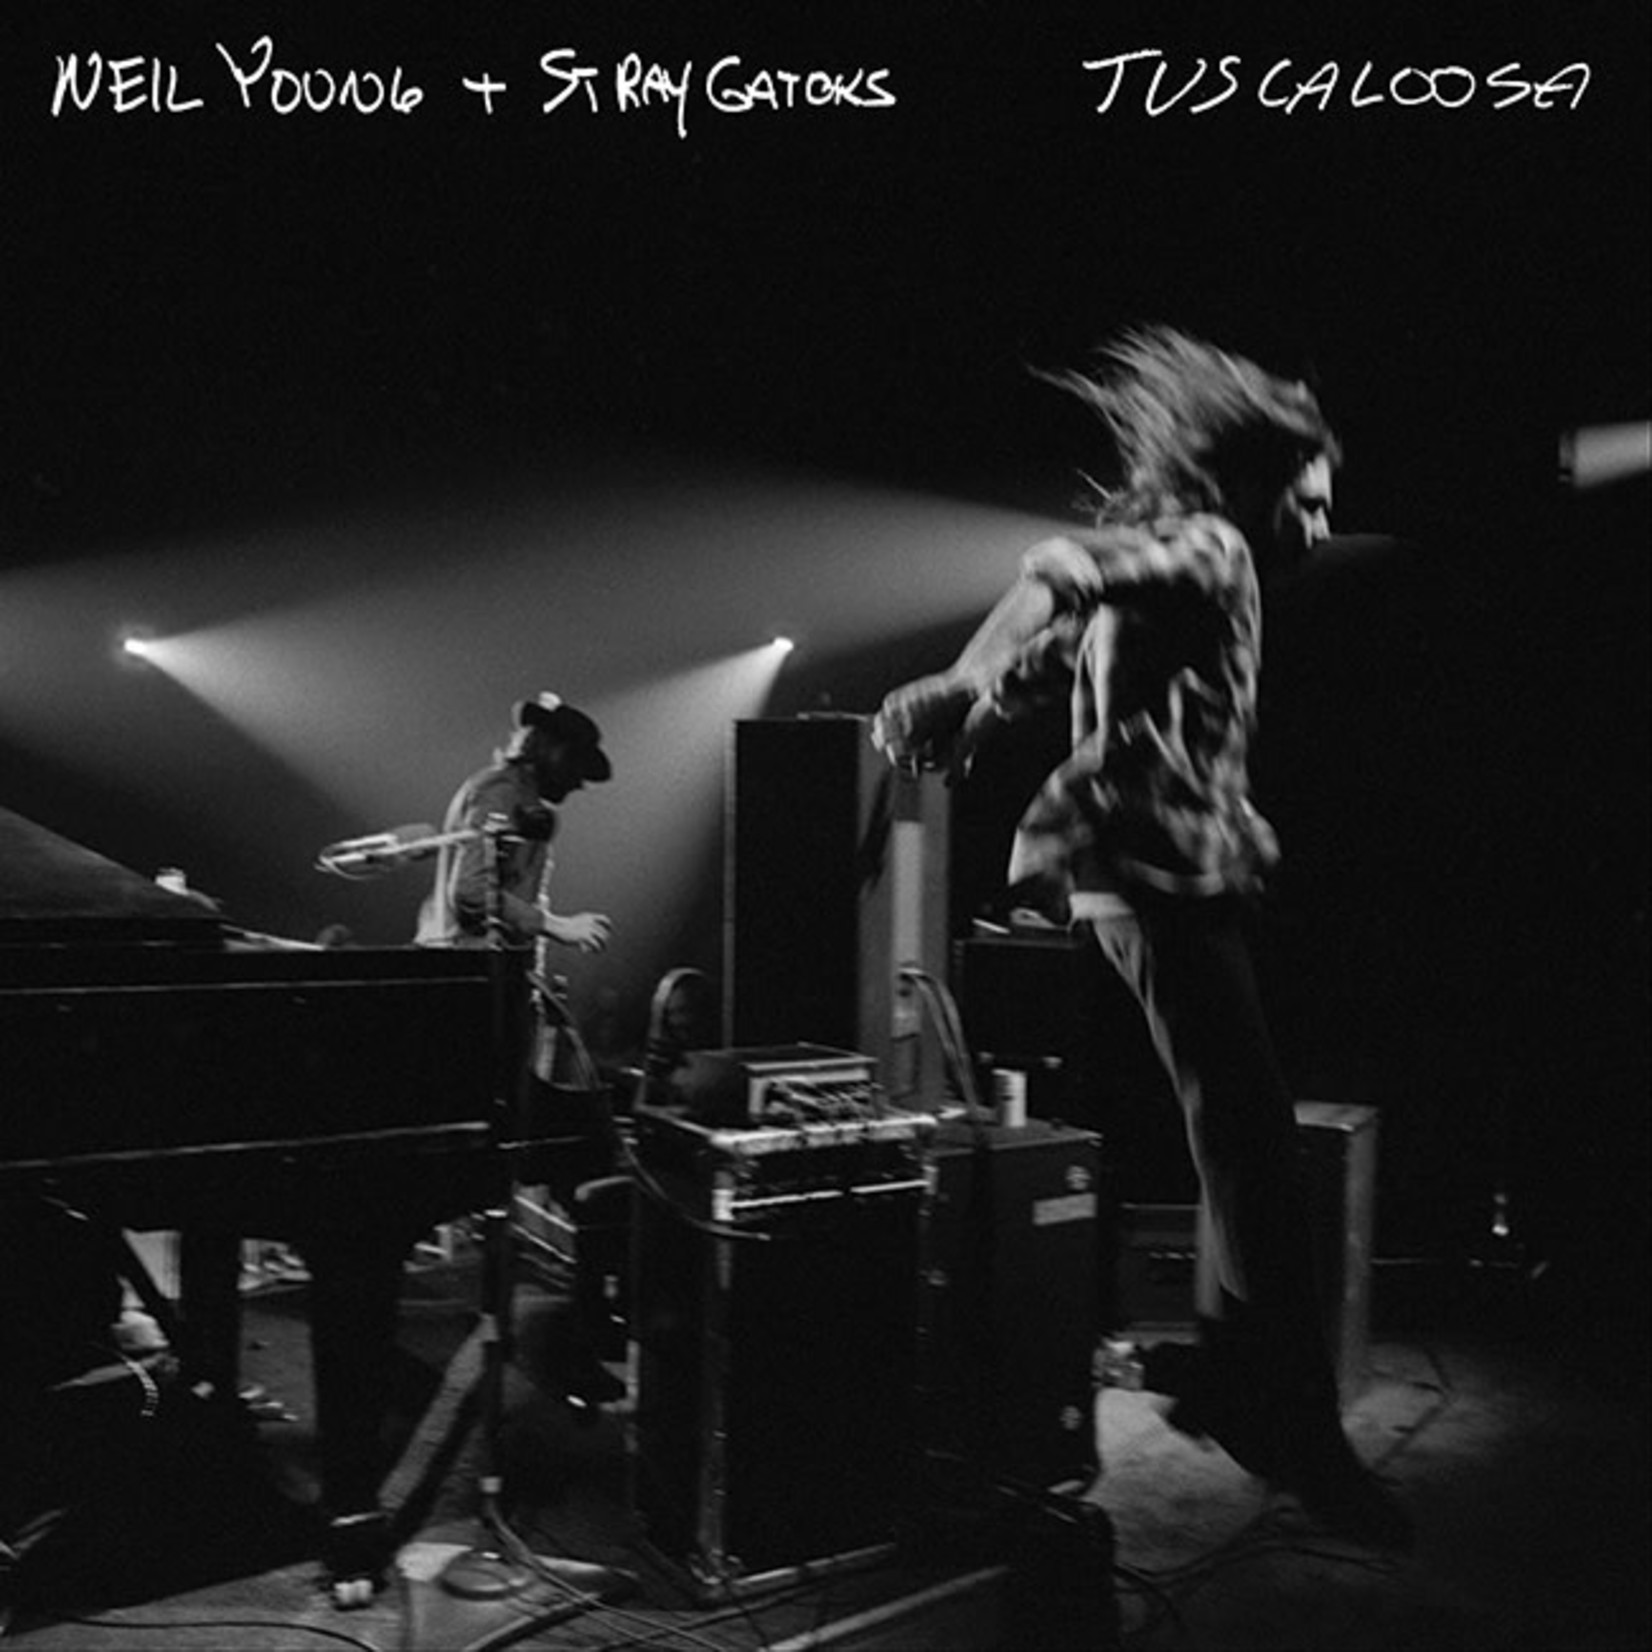 [New] Young, Neil & Stray Gators: Tuscaloosa (Live) (Neil Young Archives Series) (2LP)